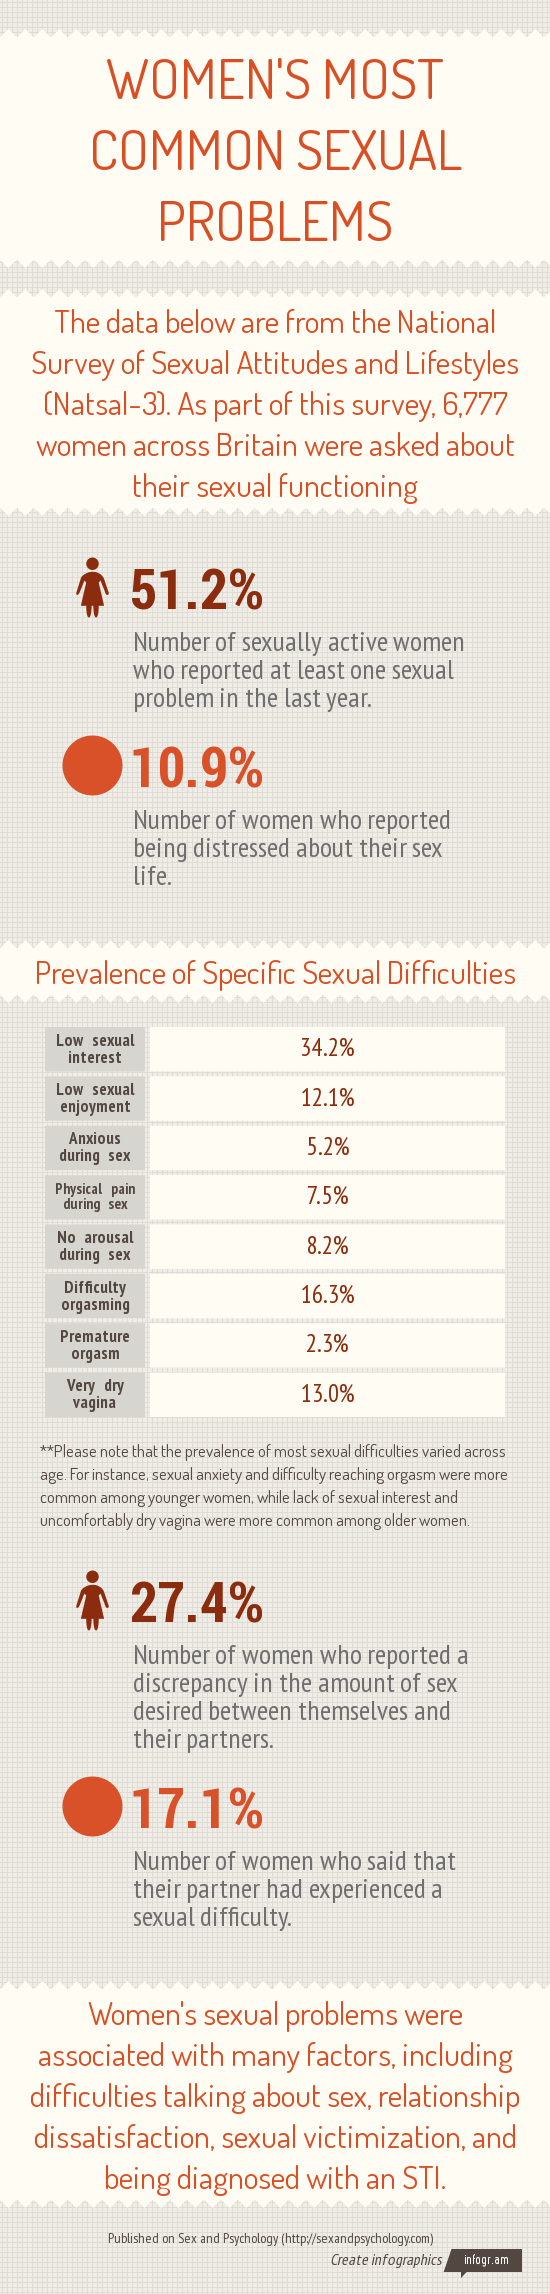 Infographic detailing women's most common sexual problems according to the NATSAL-3